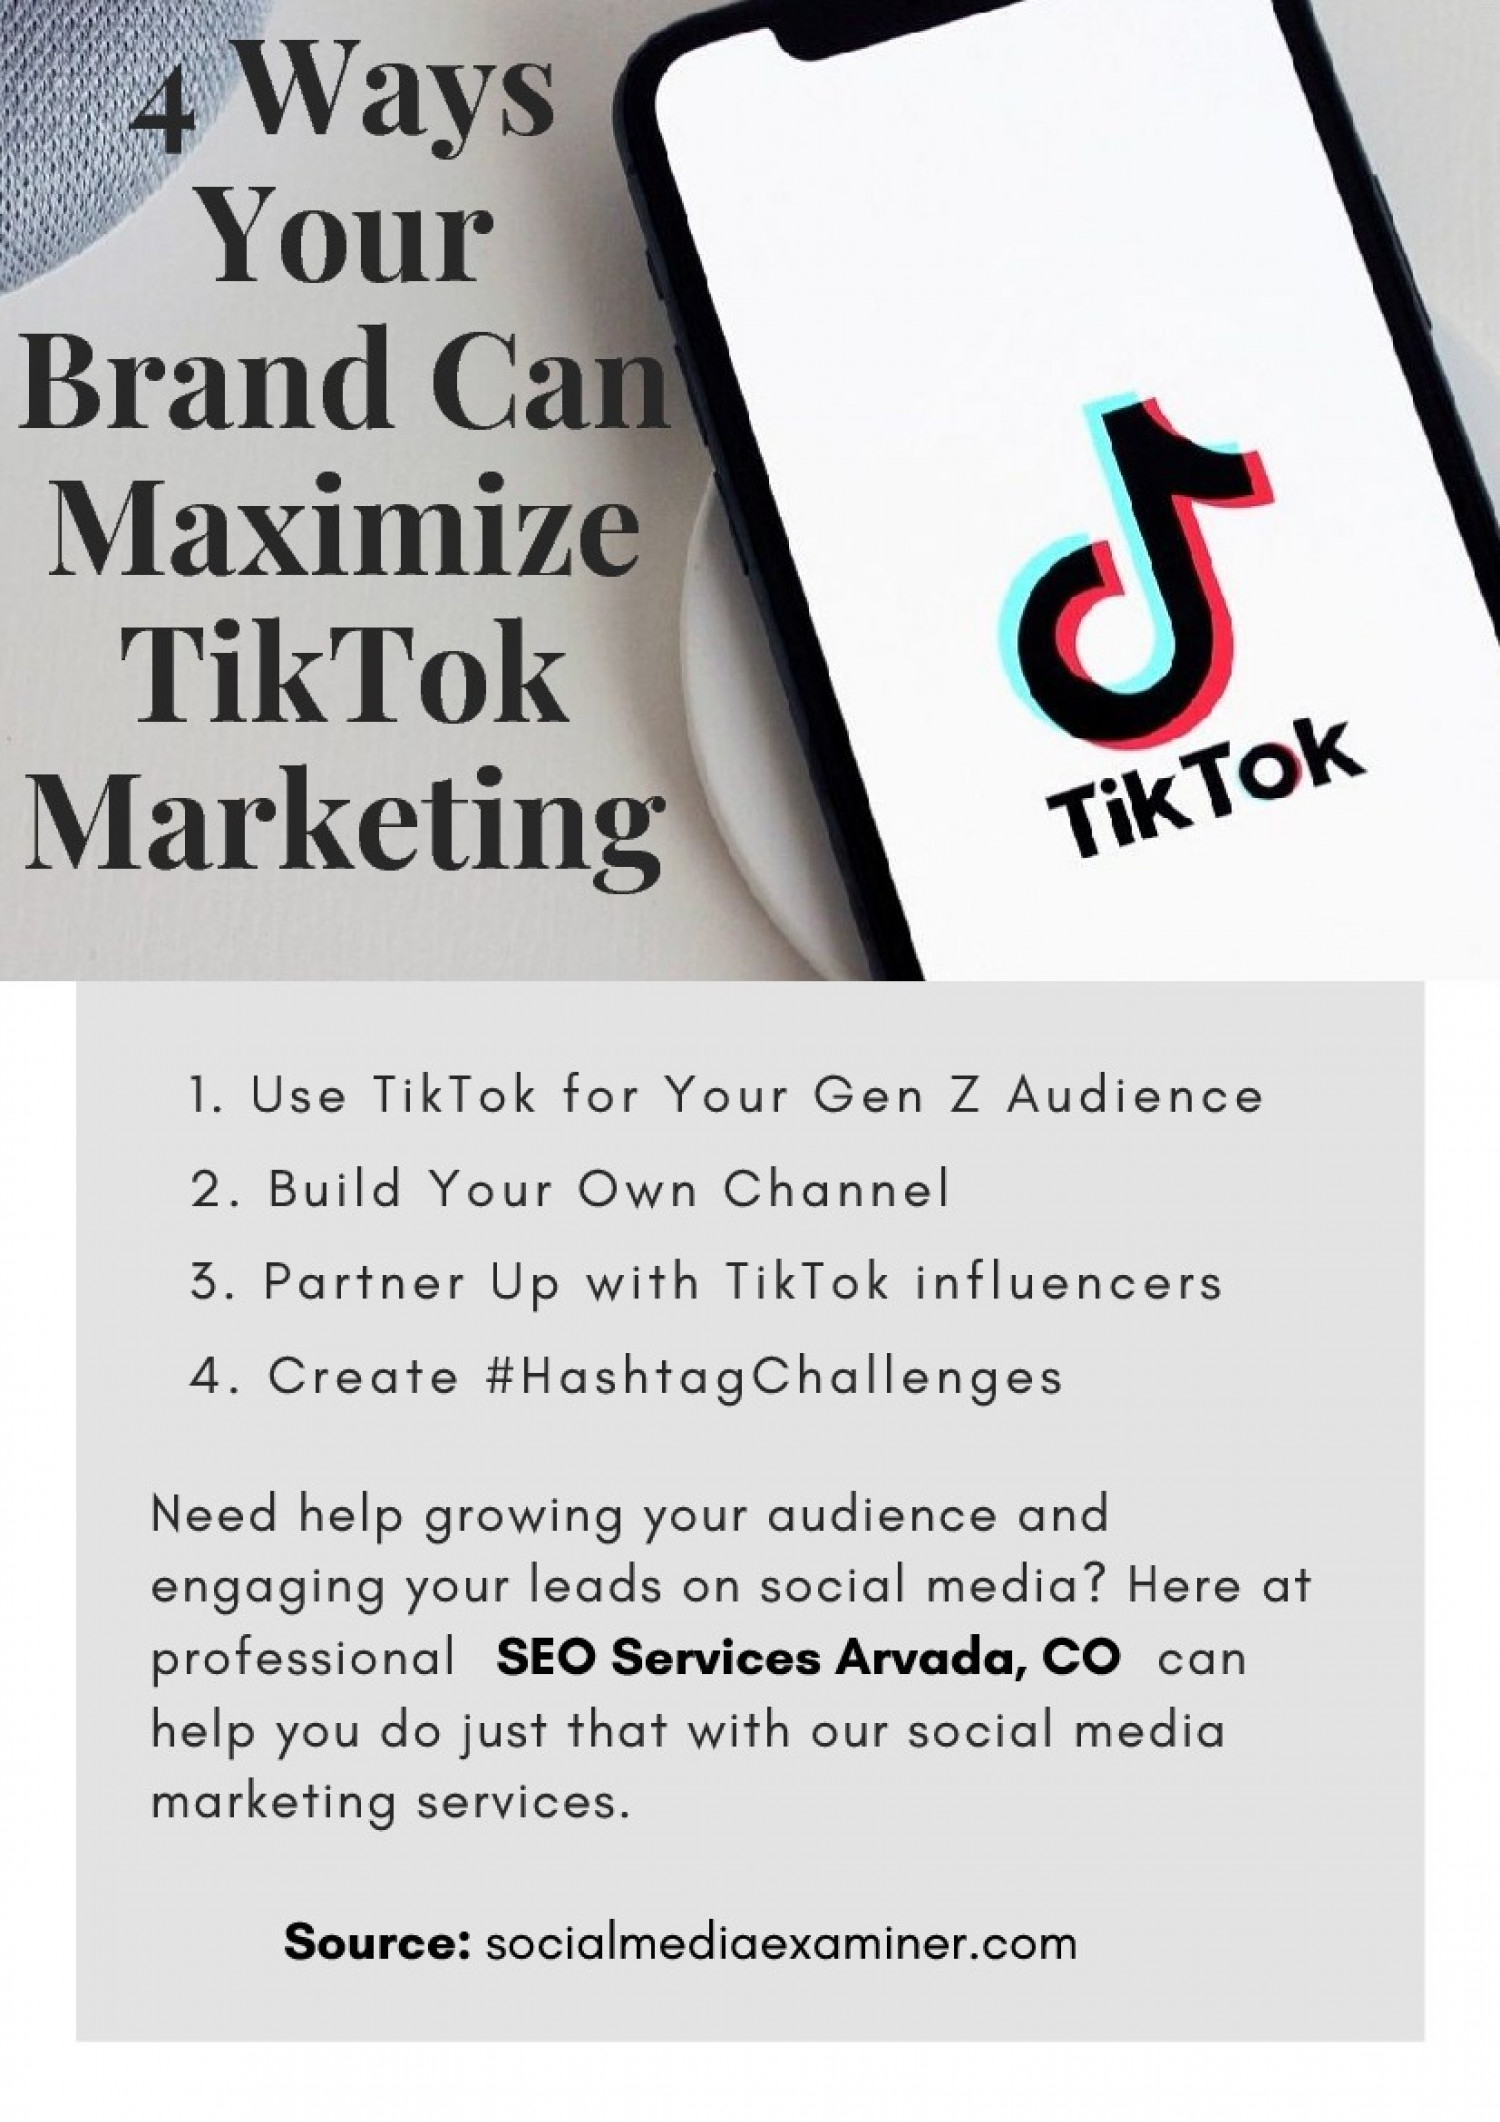 4 Ways Your Brand Can Maximize TikTok Marketing Infographic